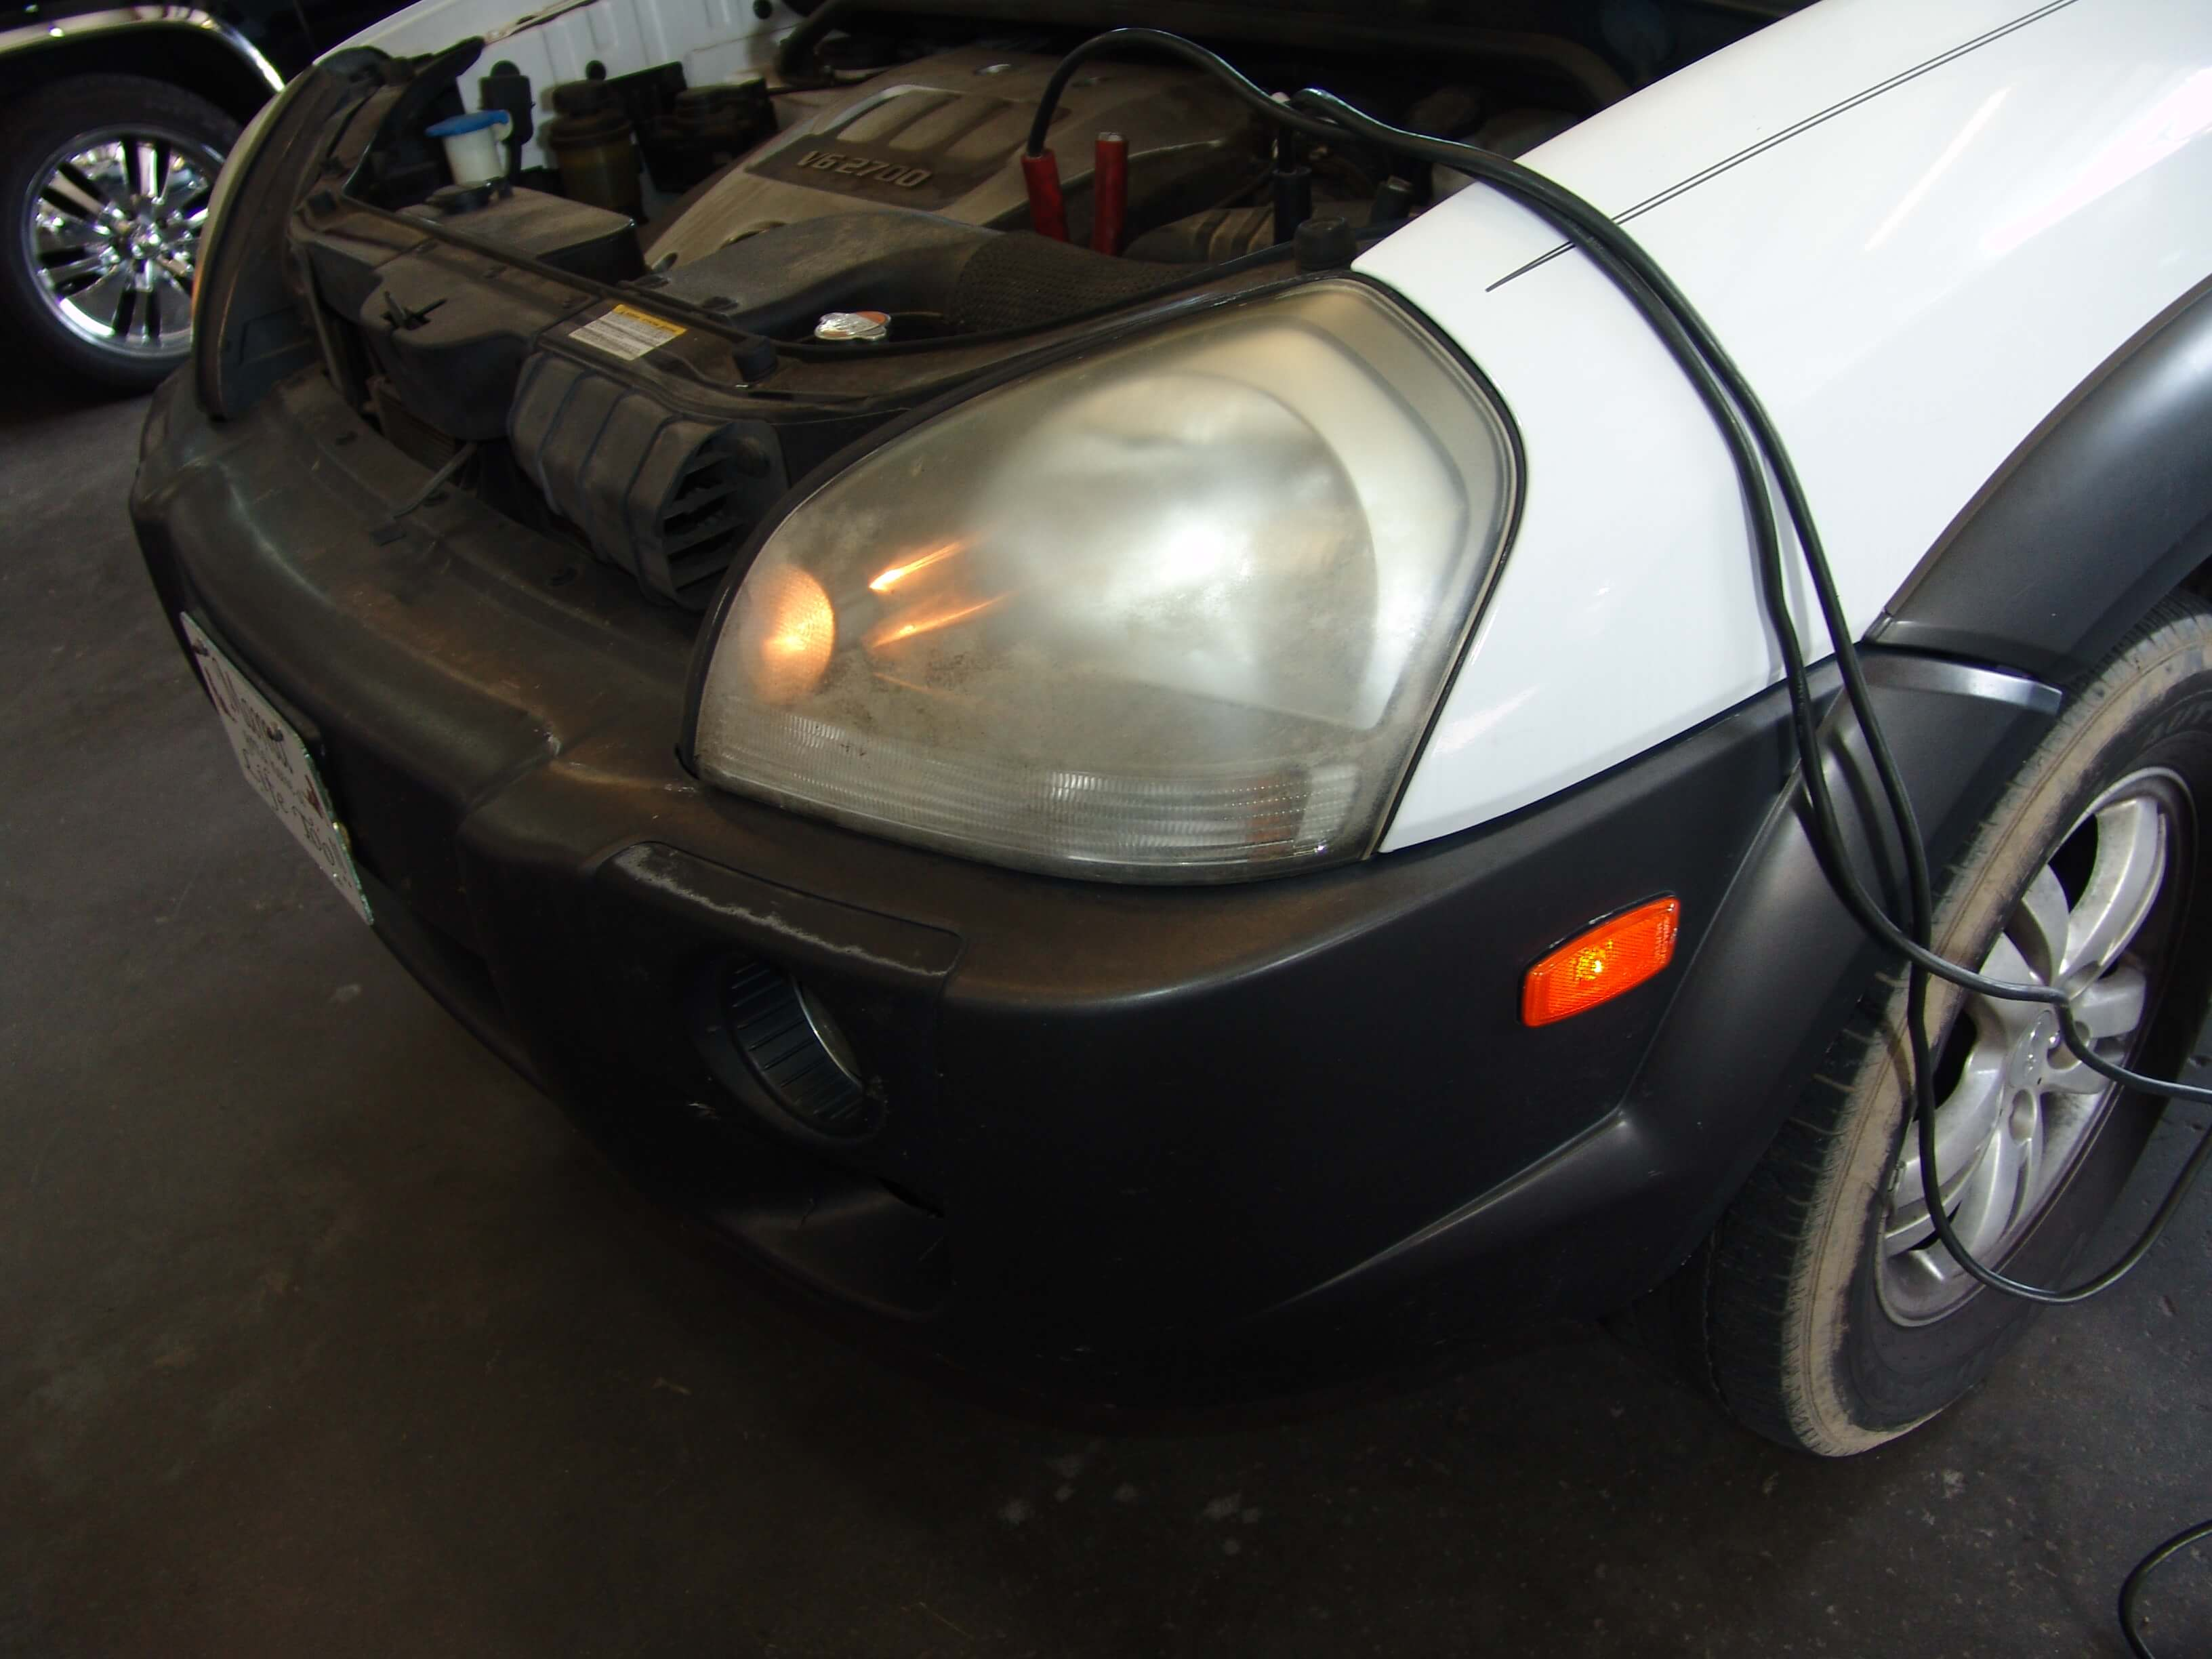 Sparkys Answers 2006 Hyundai Tucson Park Lights Stay On